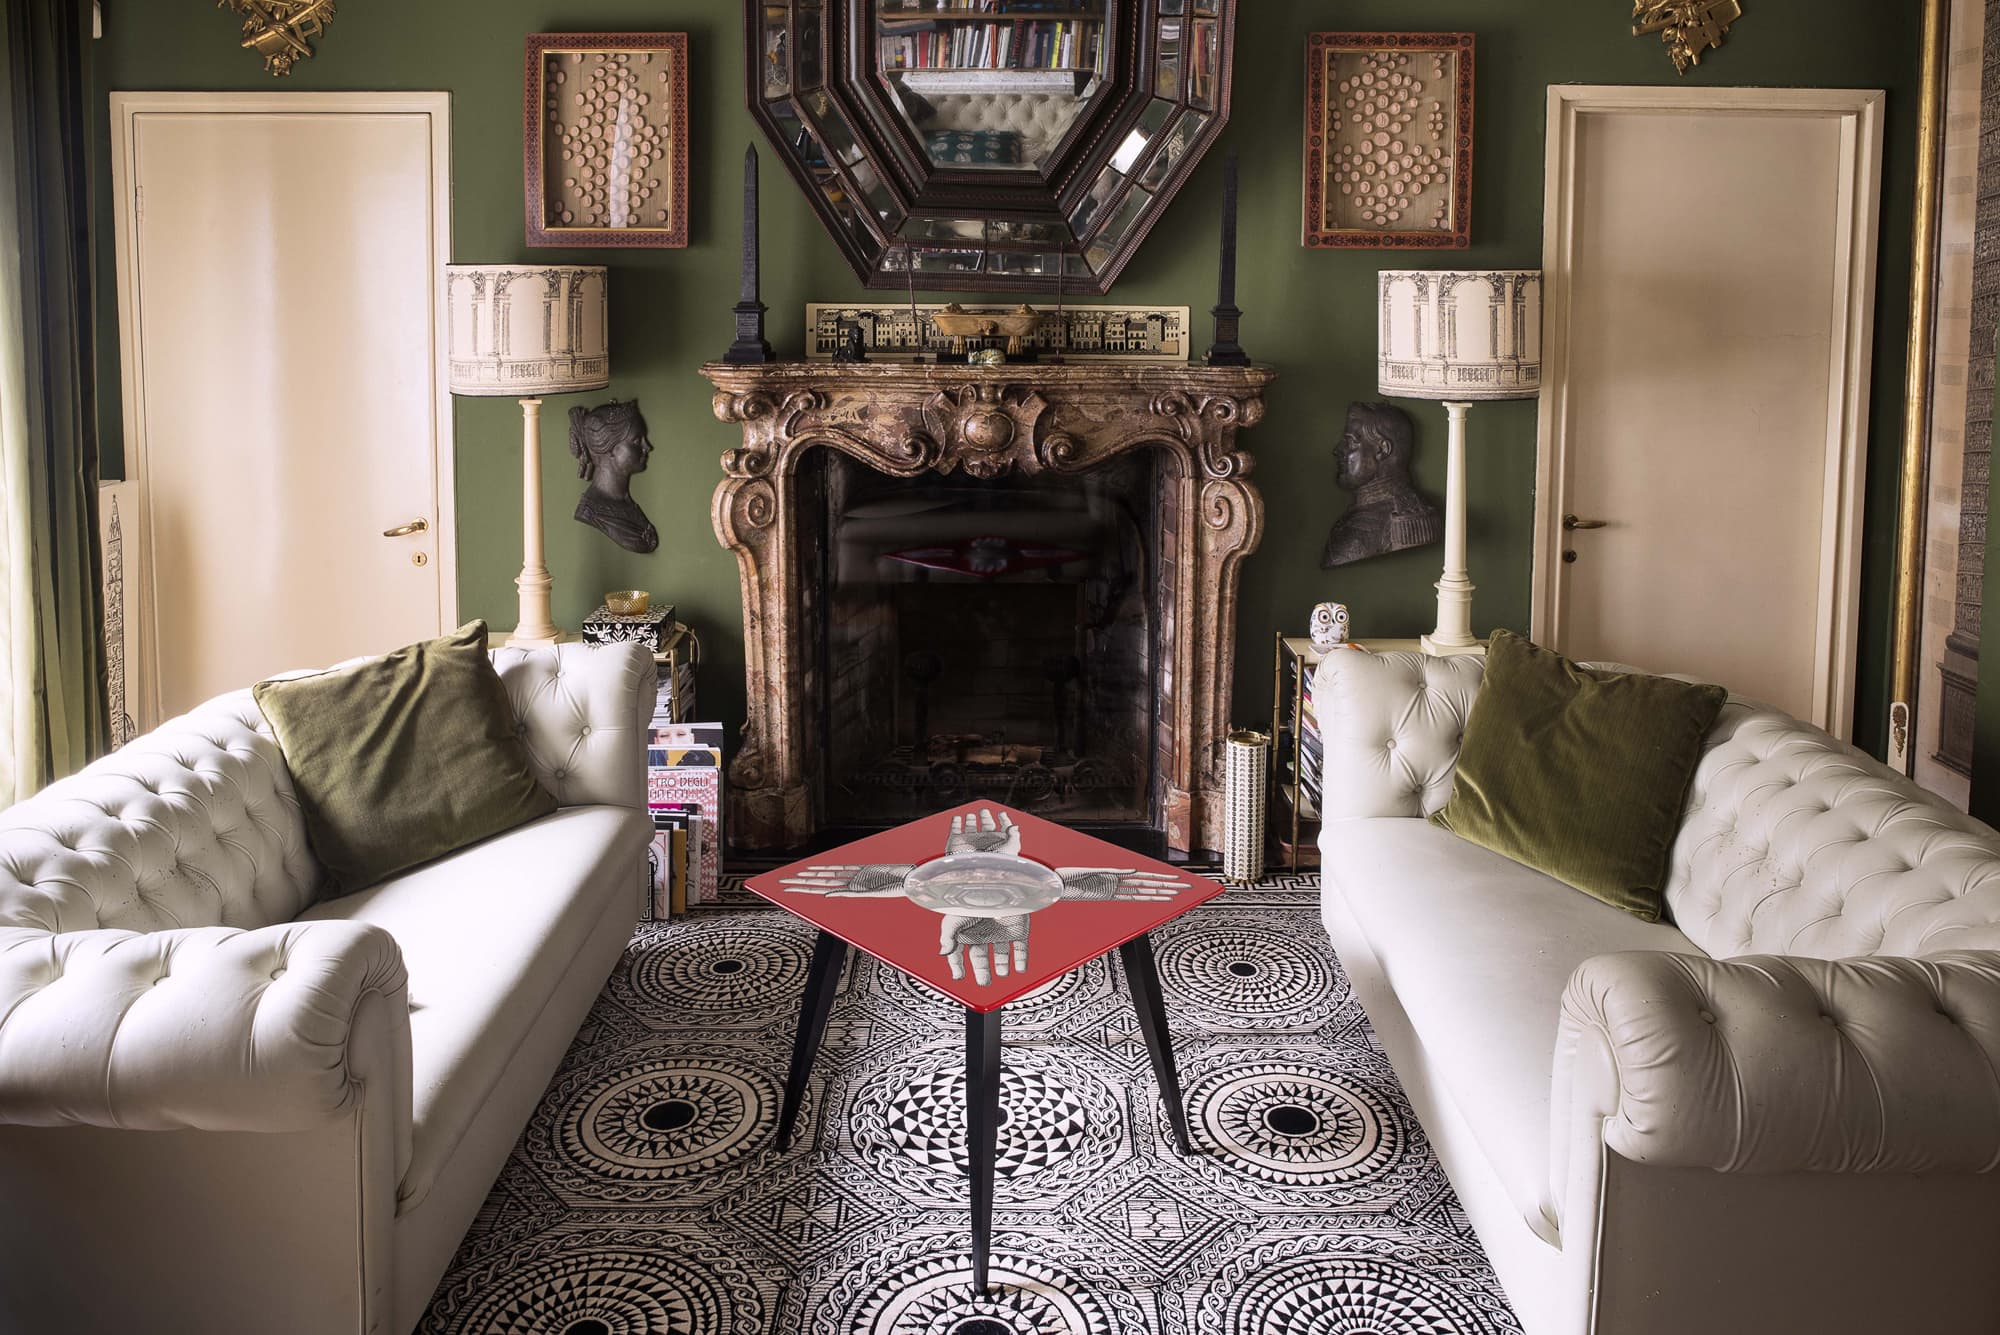 Fornasetti's new sophisticated home collection